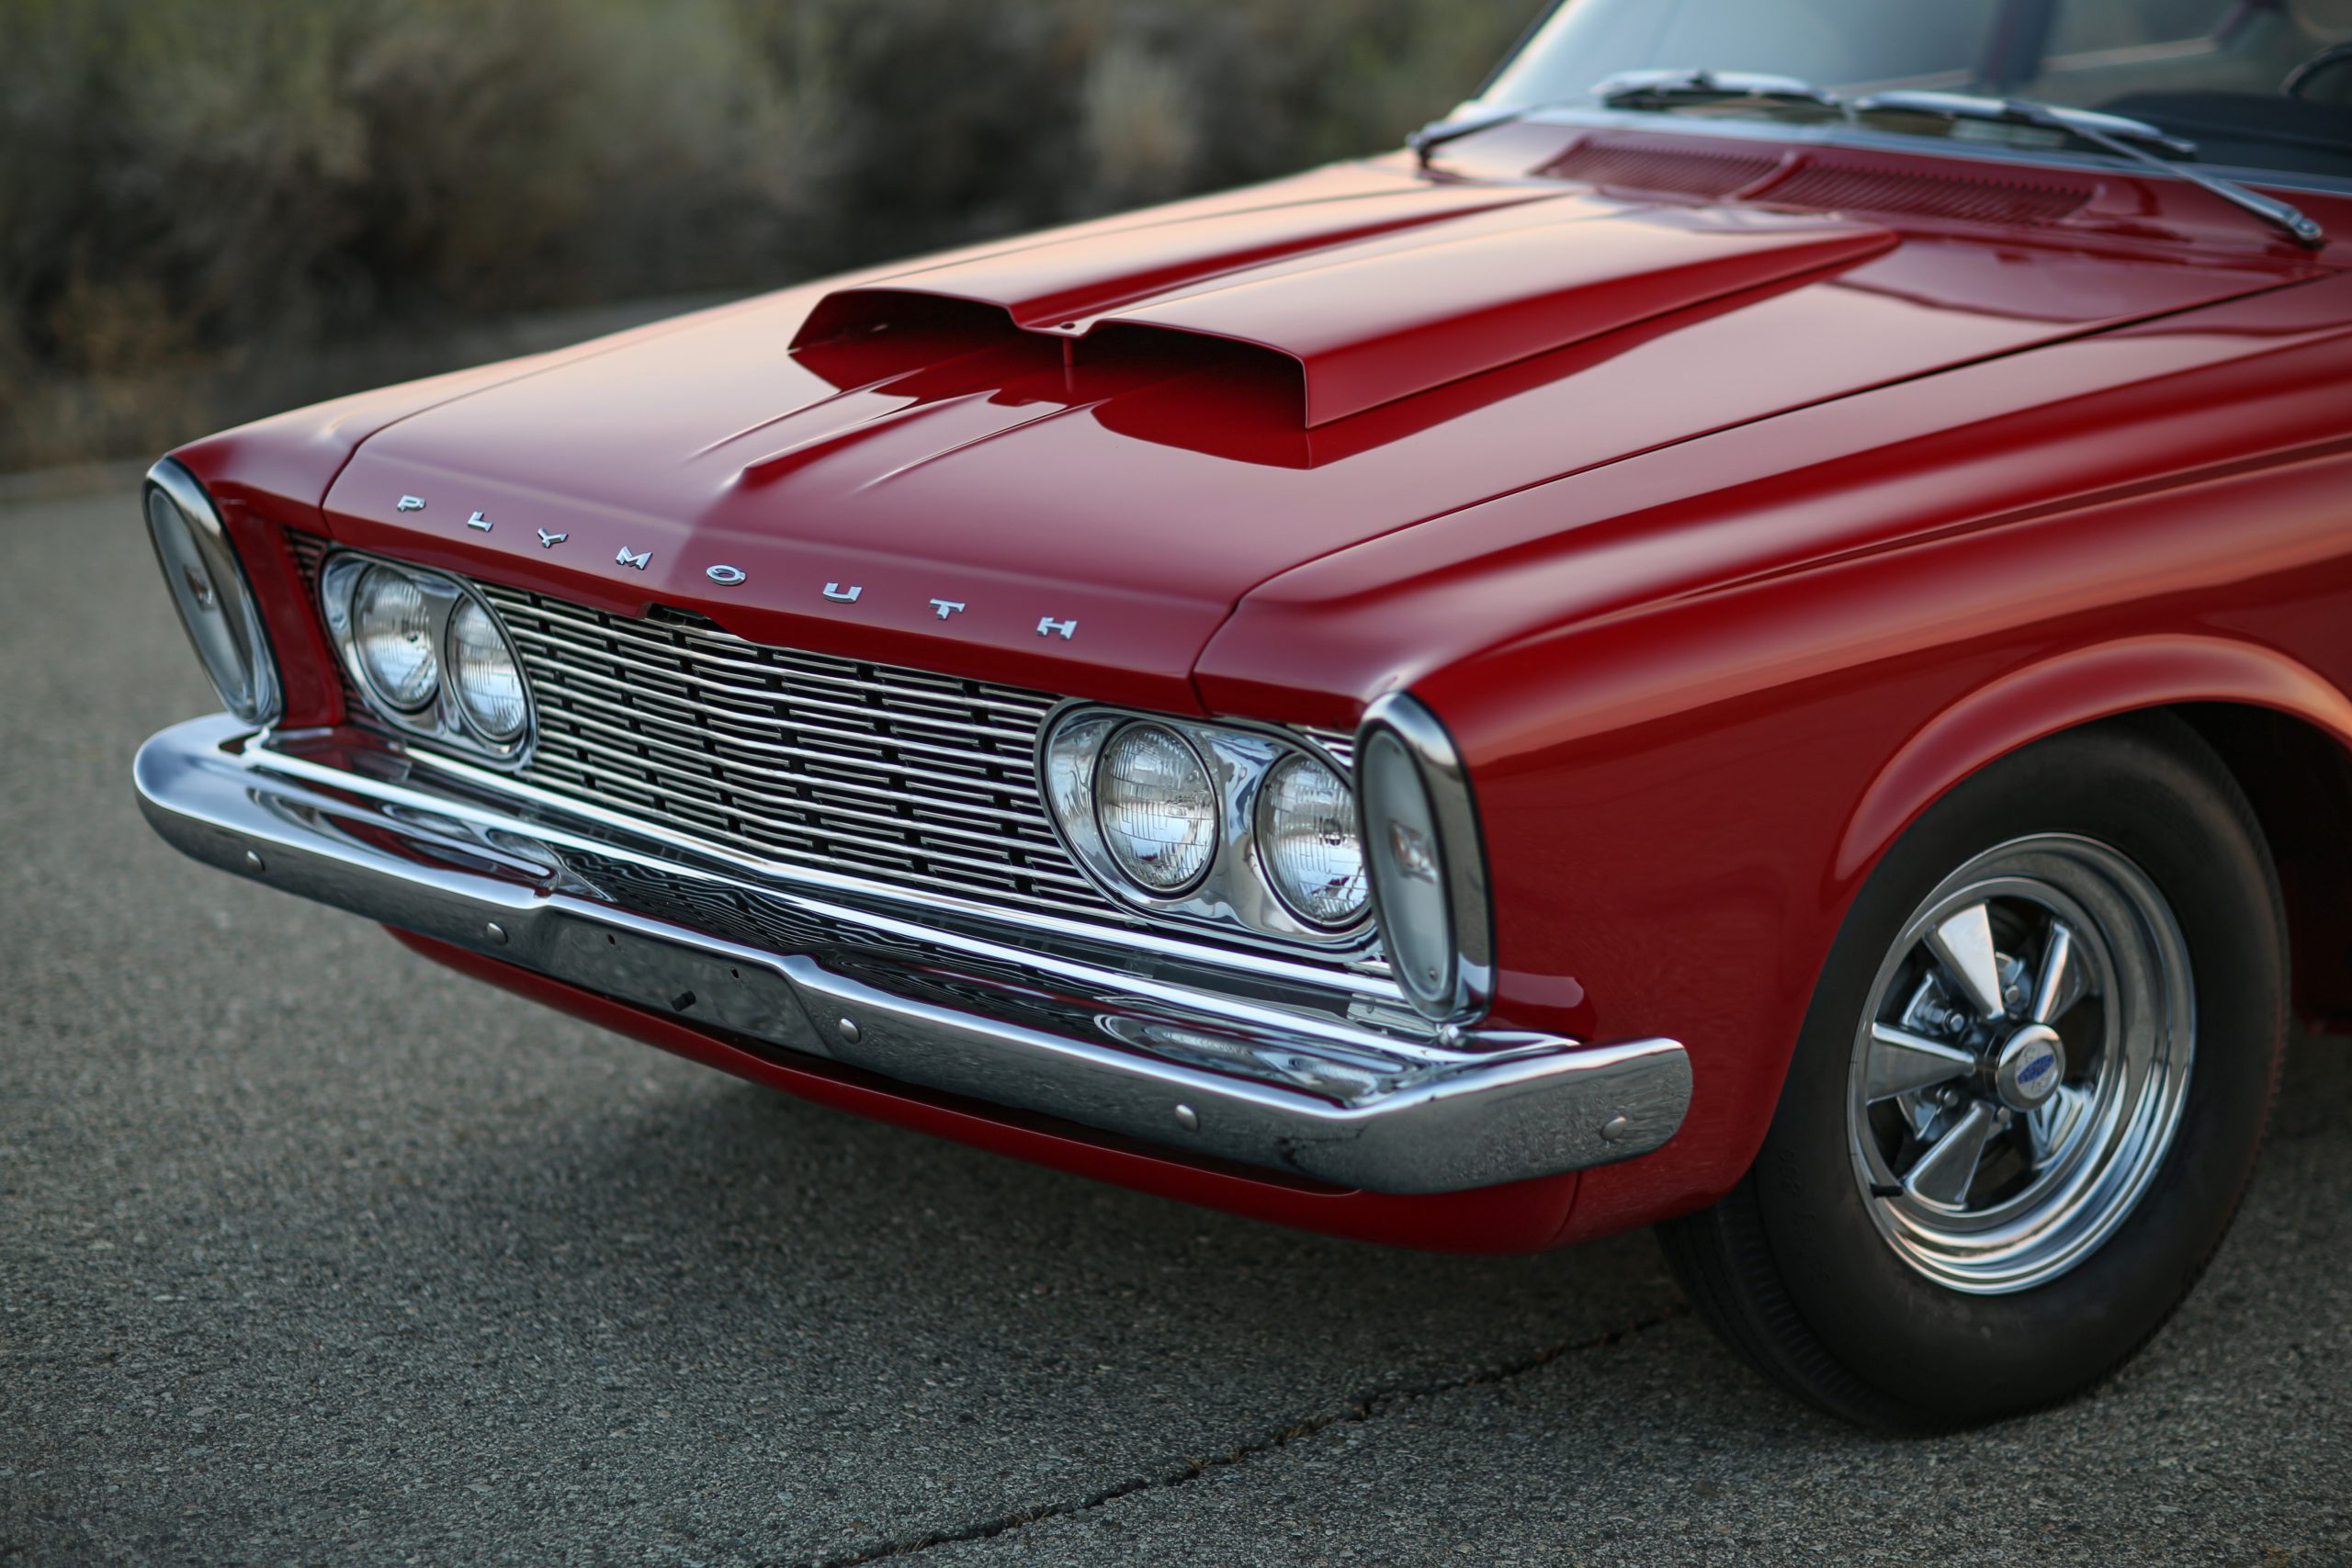 1963 Plymouth 426 Max Wedge lightweight front end